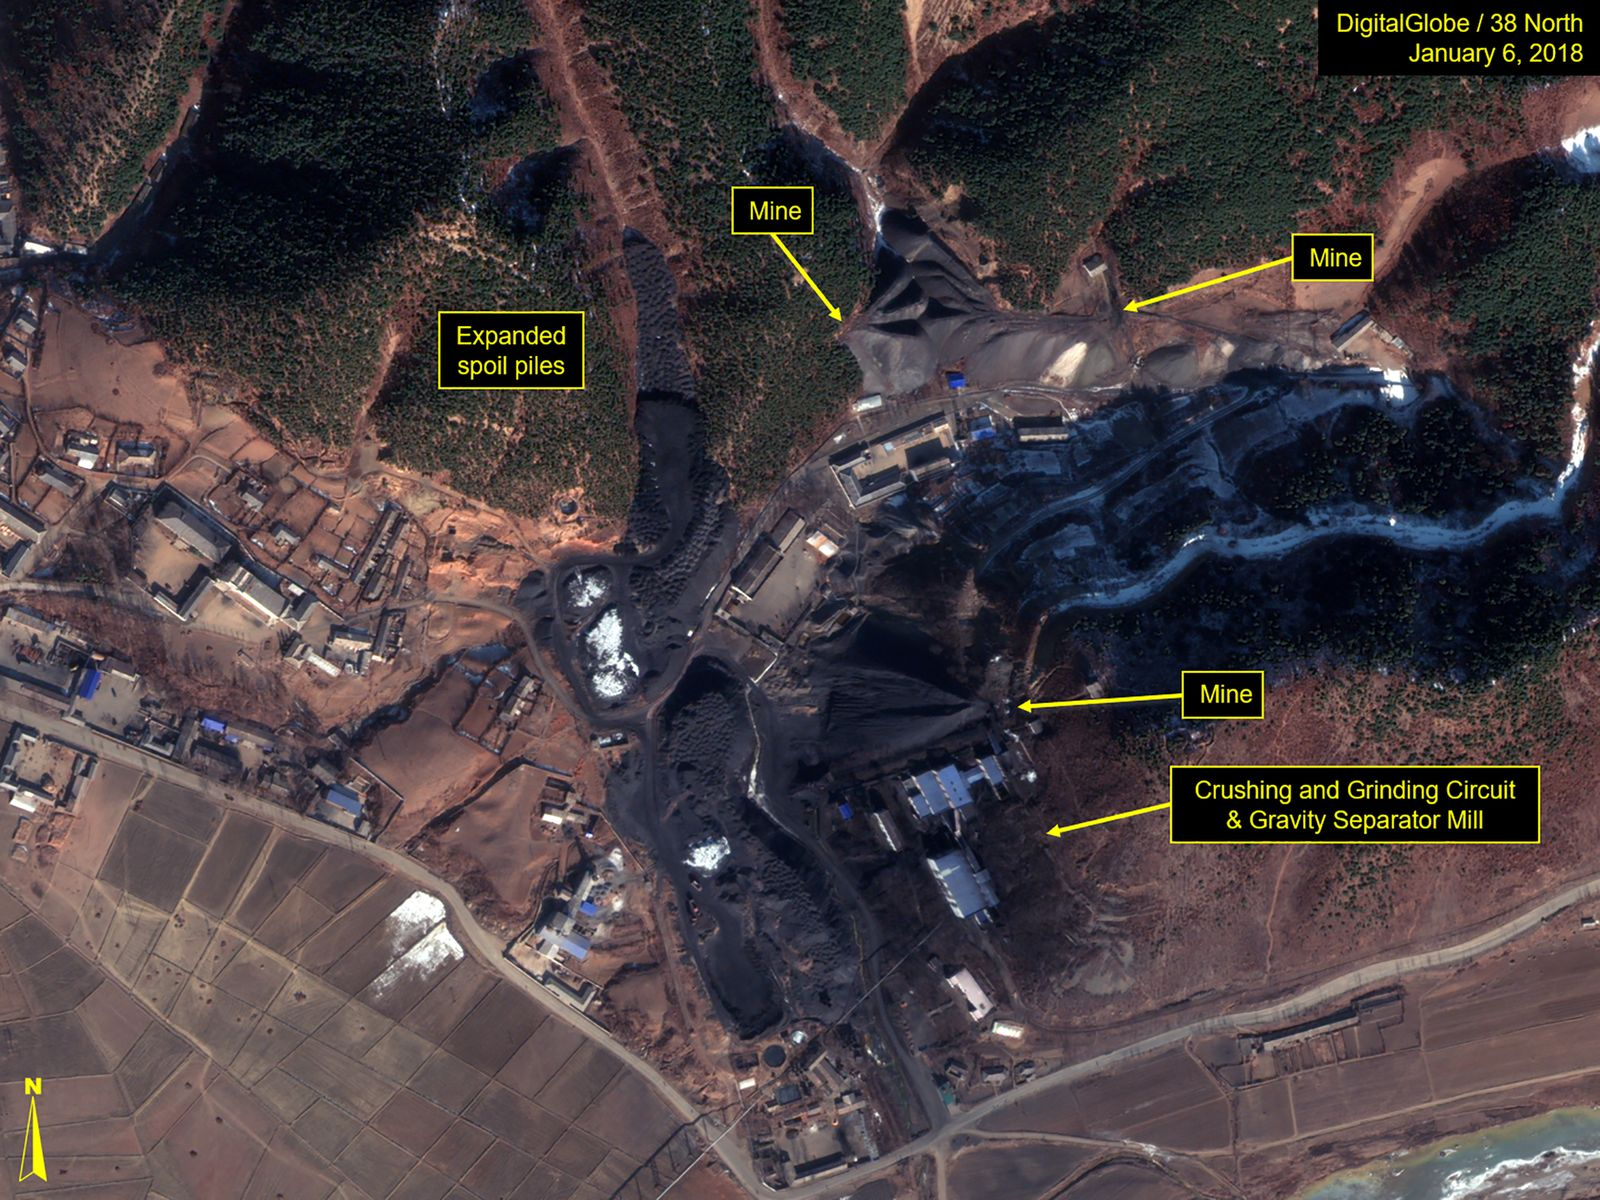 JANUARY 6, 2018: Figure 4. Some growth is observed in the spoil piles associated to the uranium mines located just north of the Pyongsan Mine and Uranium Concentration Plant.